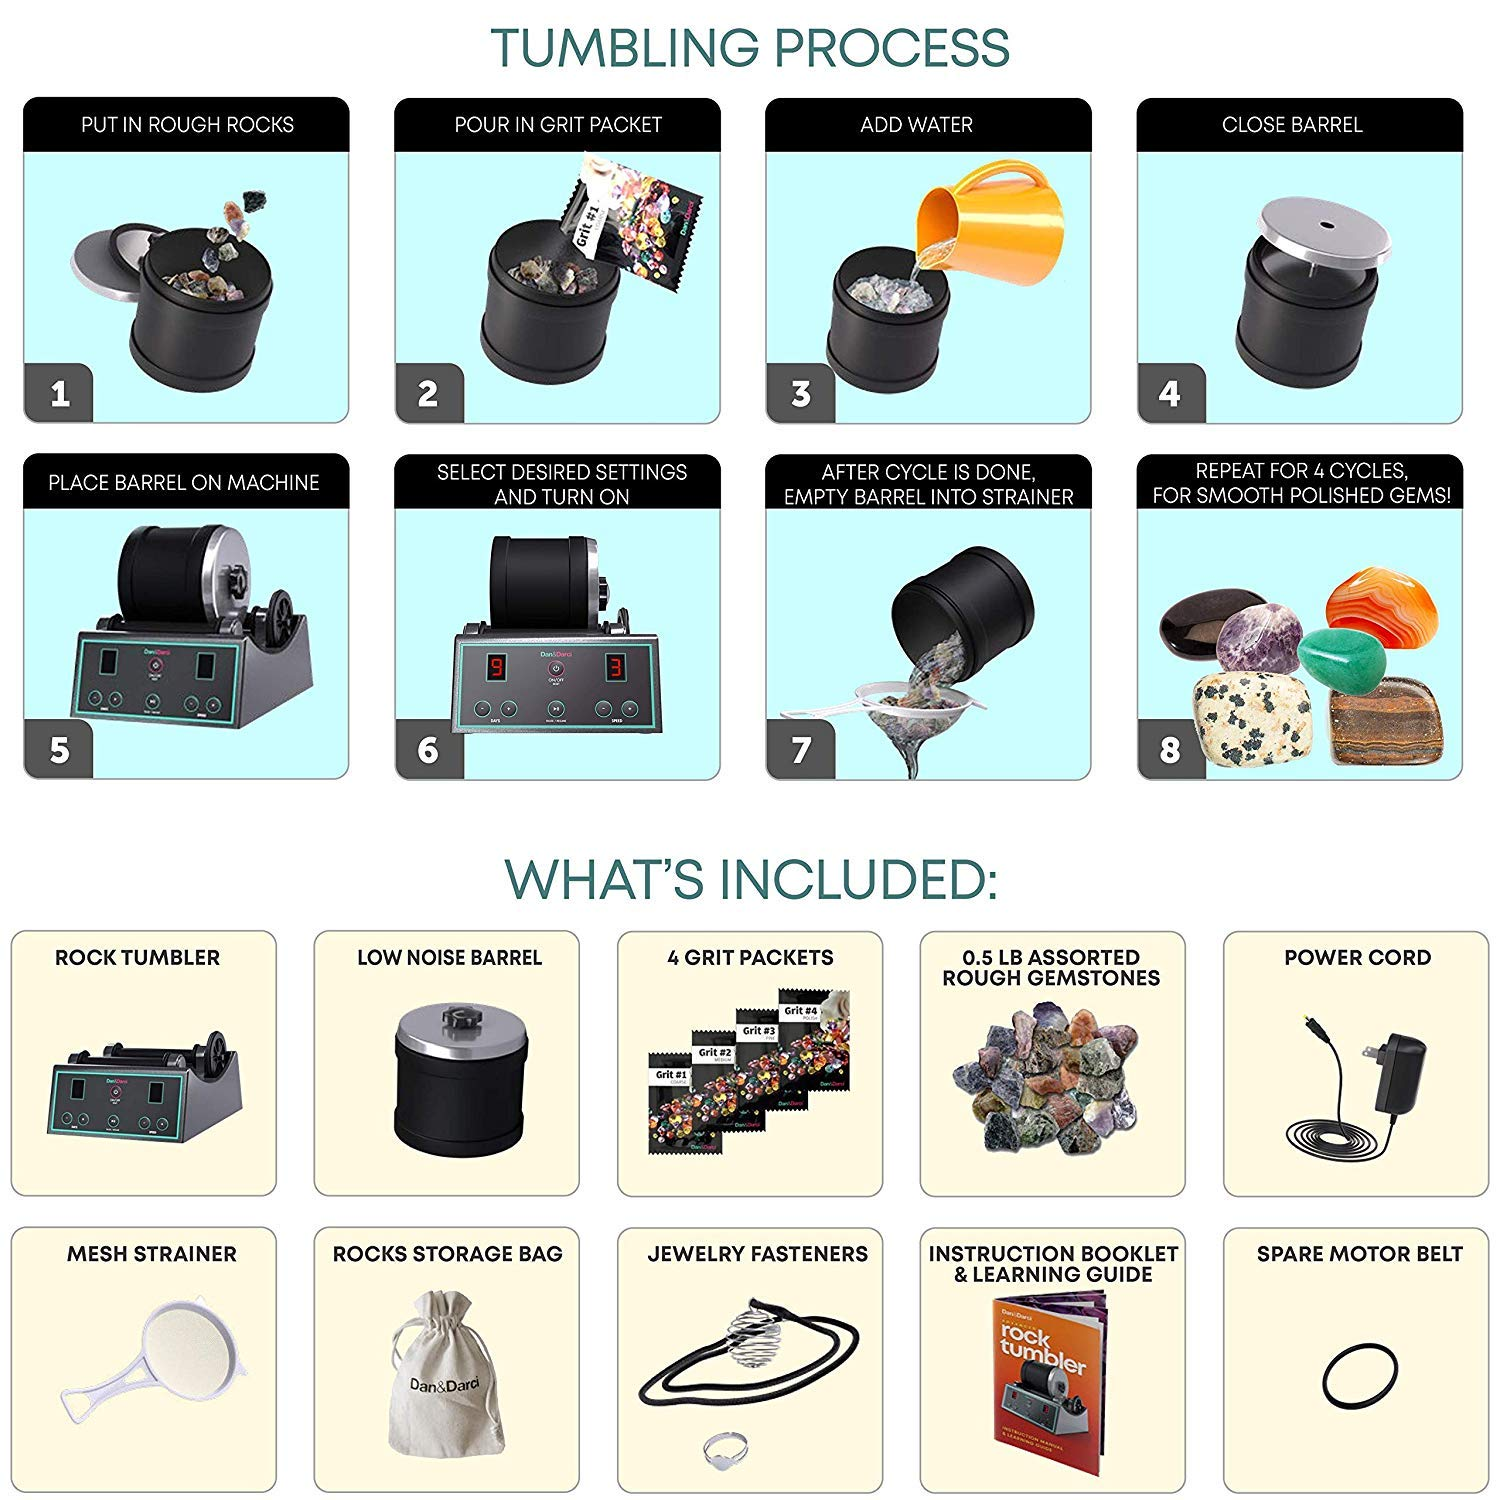 Advanced Professional Rock Tumbler Kit with Digital 9-day timer and 3-speed settings Study Geology /& Mineralogy Turn Rough Rocks into Beautiful Gems Great Science Kit /& STEM Gift for all ages